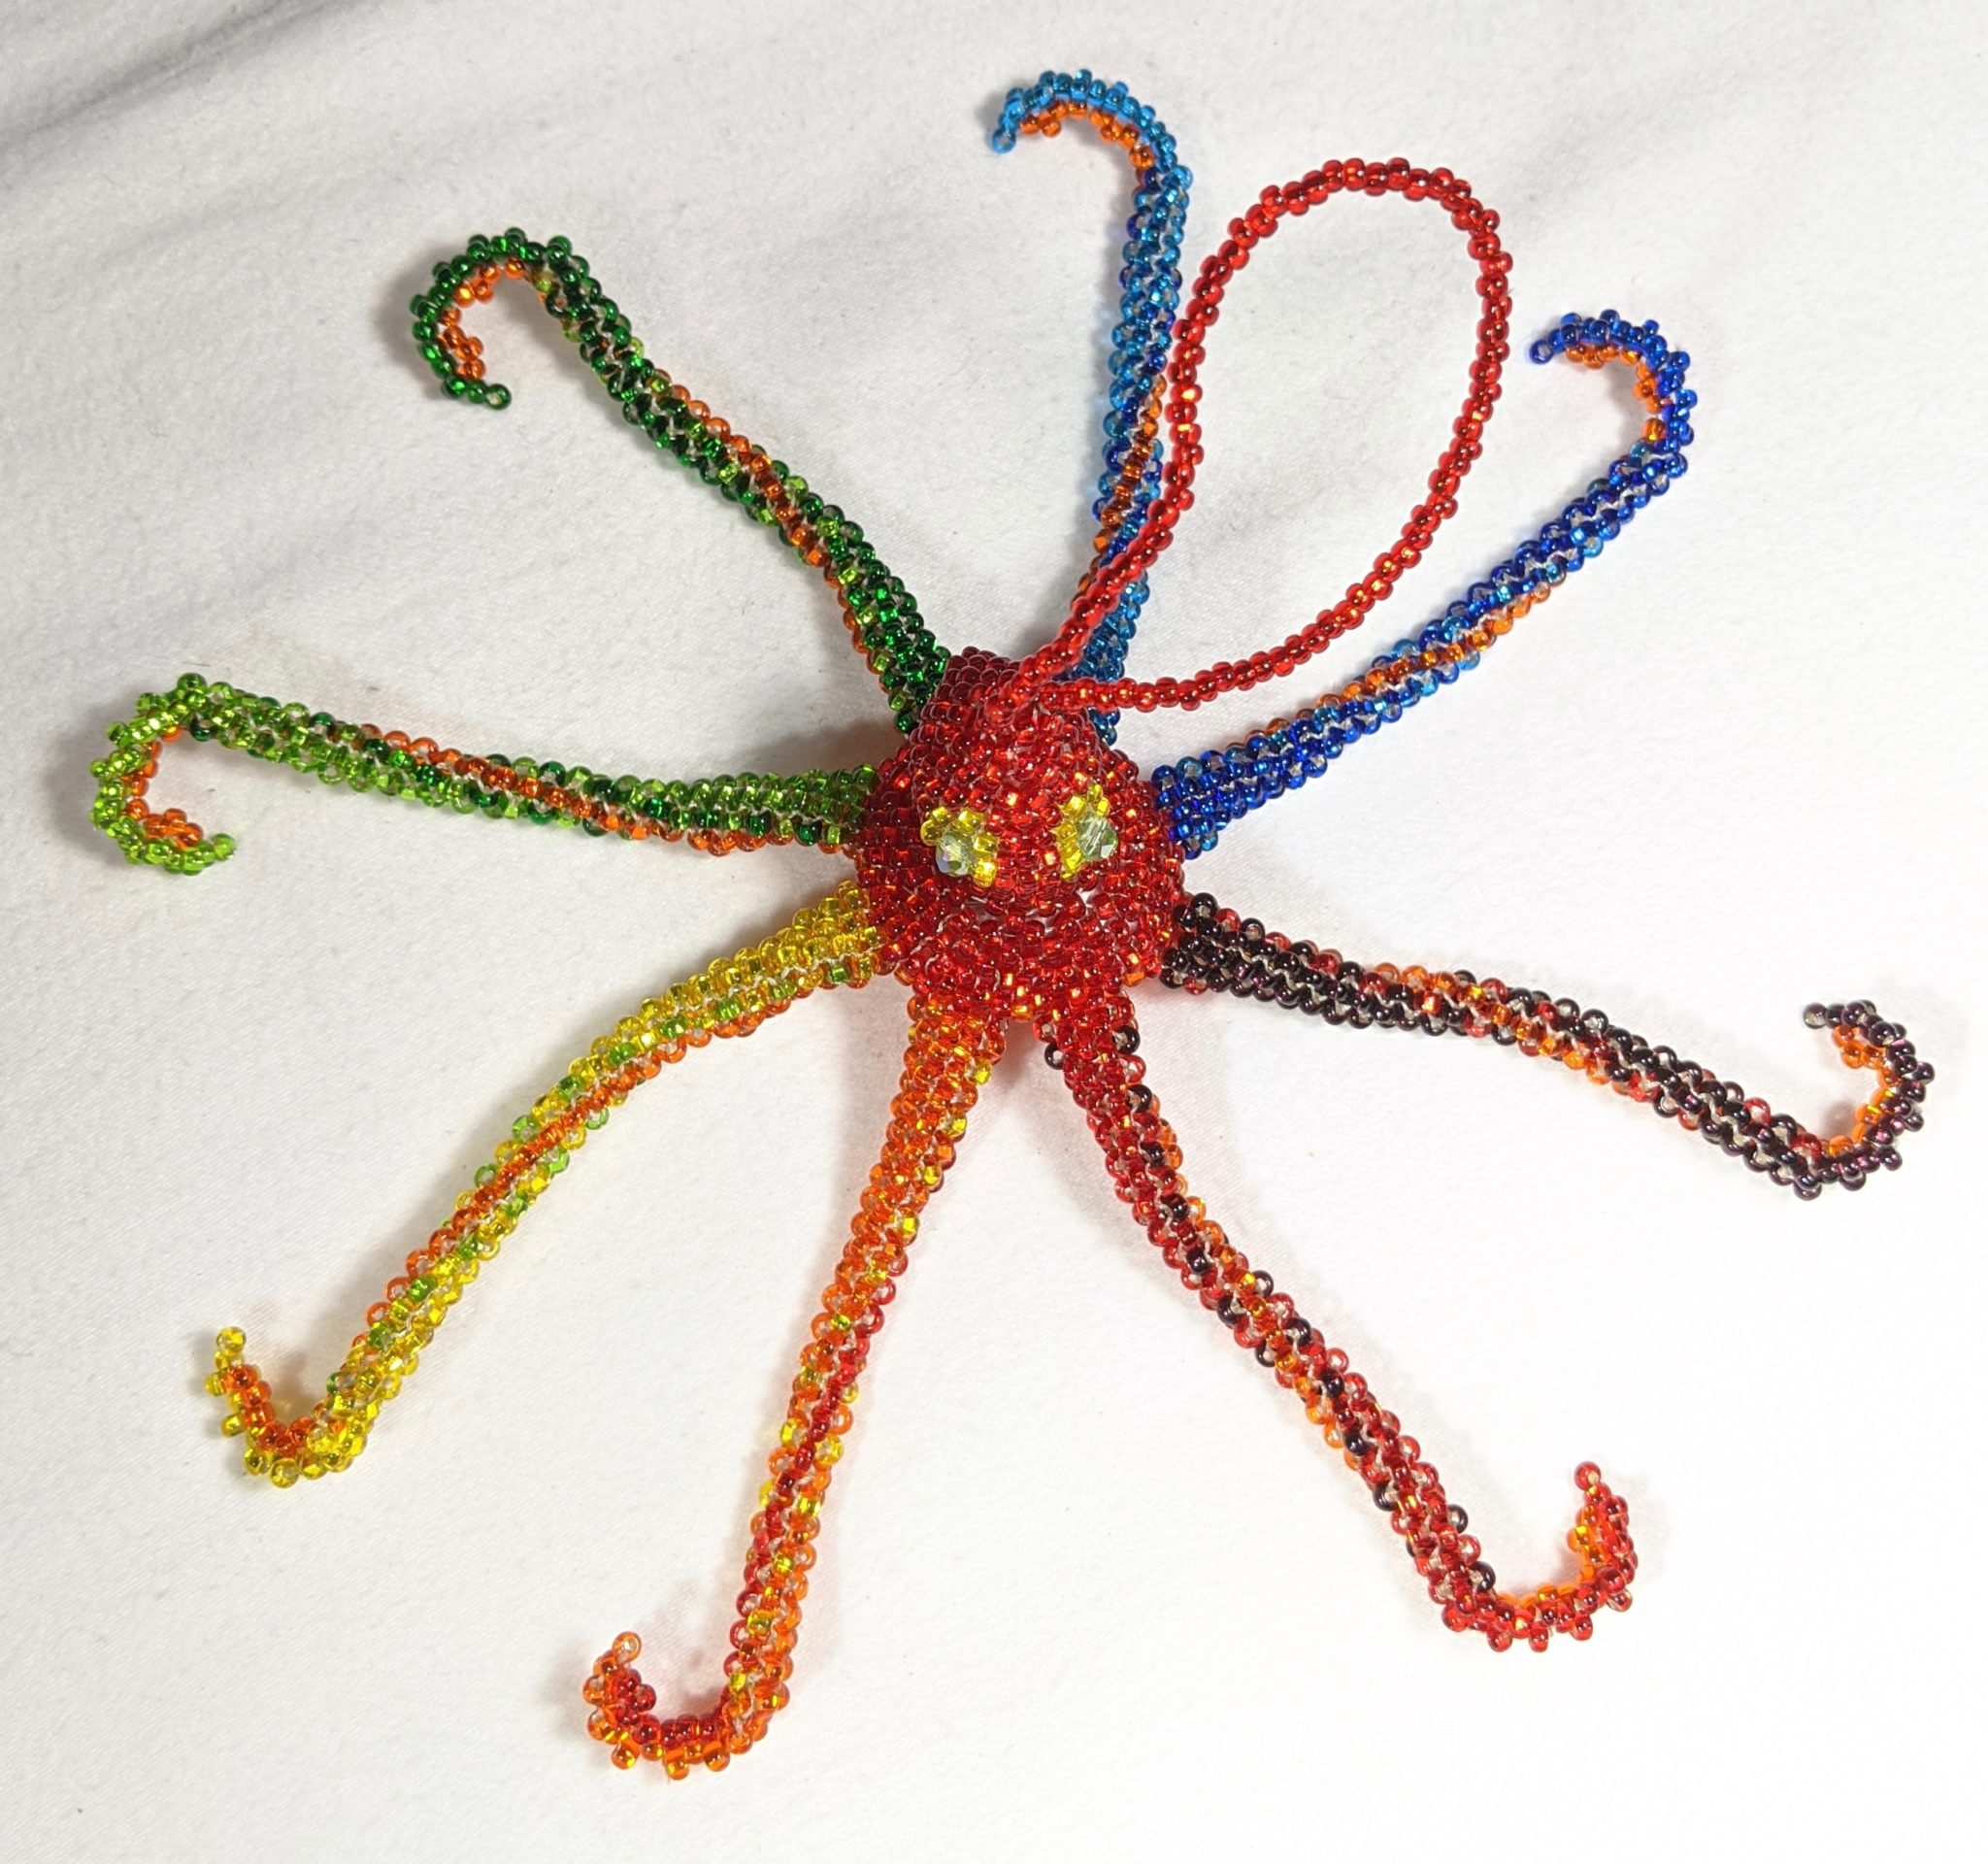 Octopus Beaded Ornament - Rainbow with Red